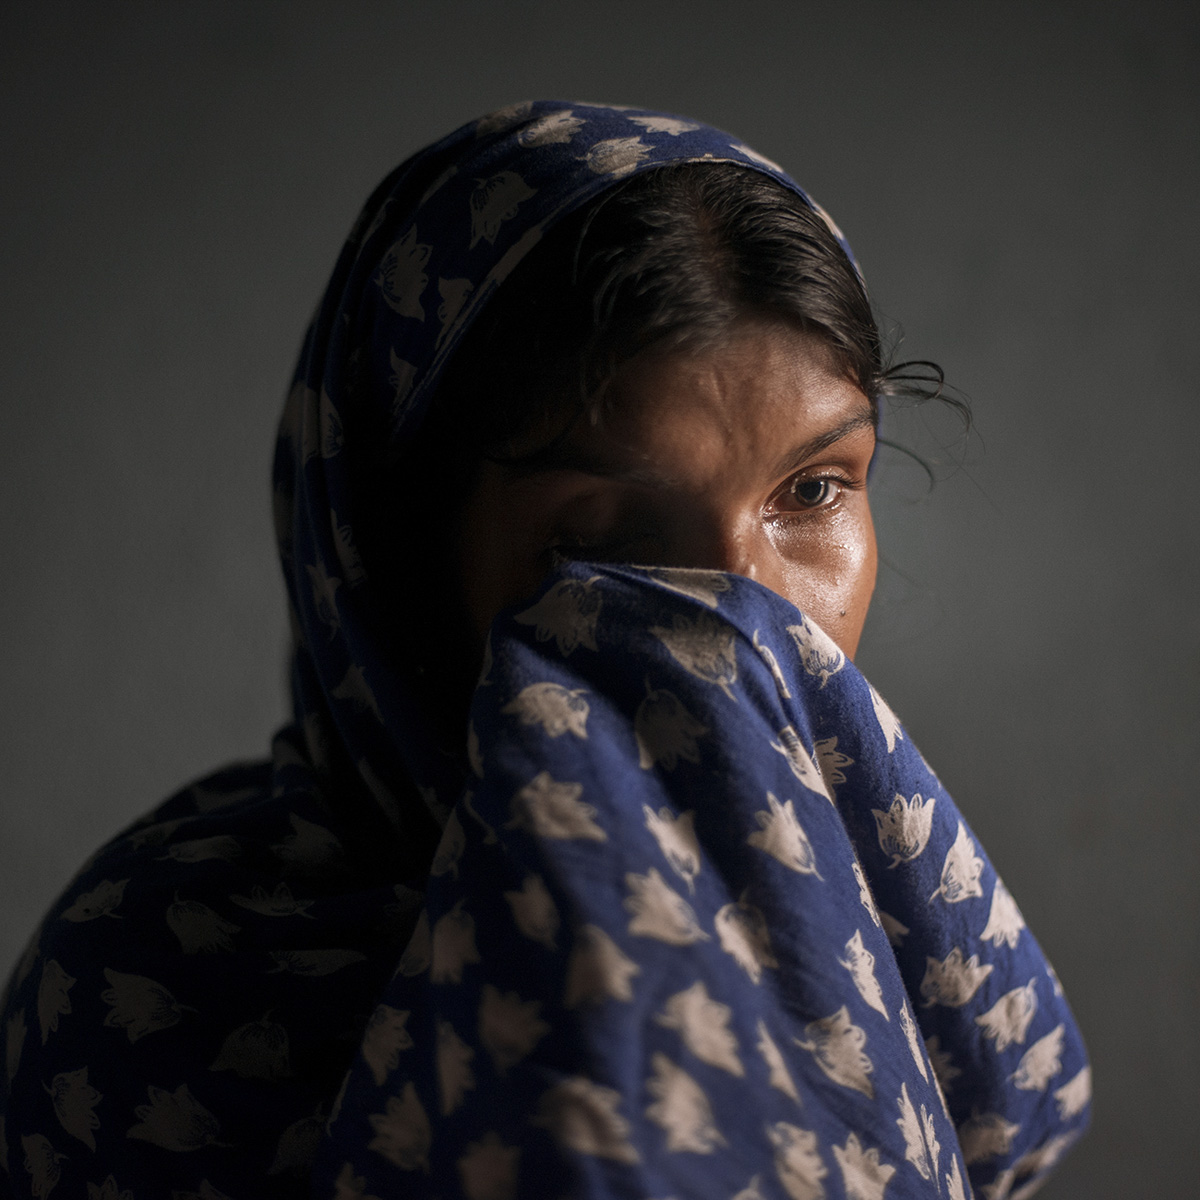 Amena, one of the victims of Rana Plaza disaster, was both lucky because she could get out from there alive, and at the same time she was unlucky because the physical and mental trauma caused by the horrible experience changed her forever.